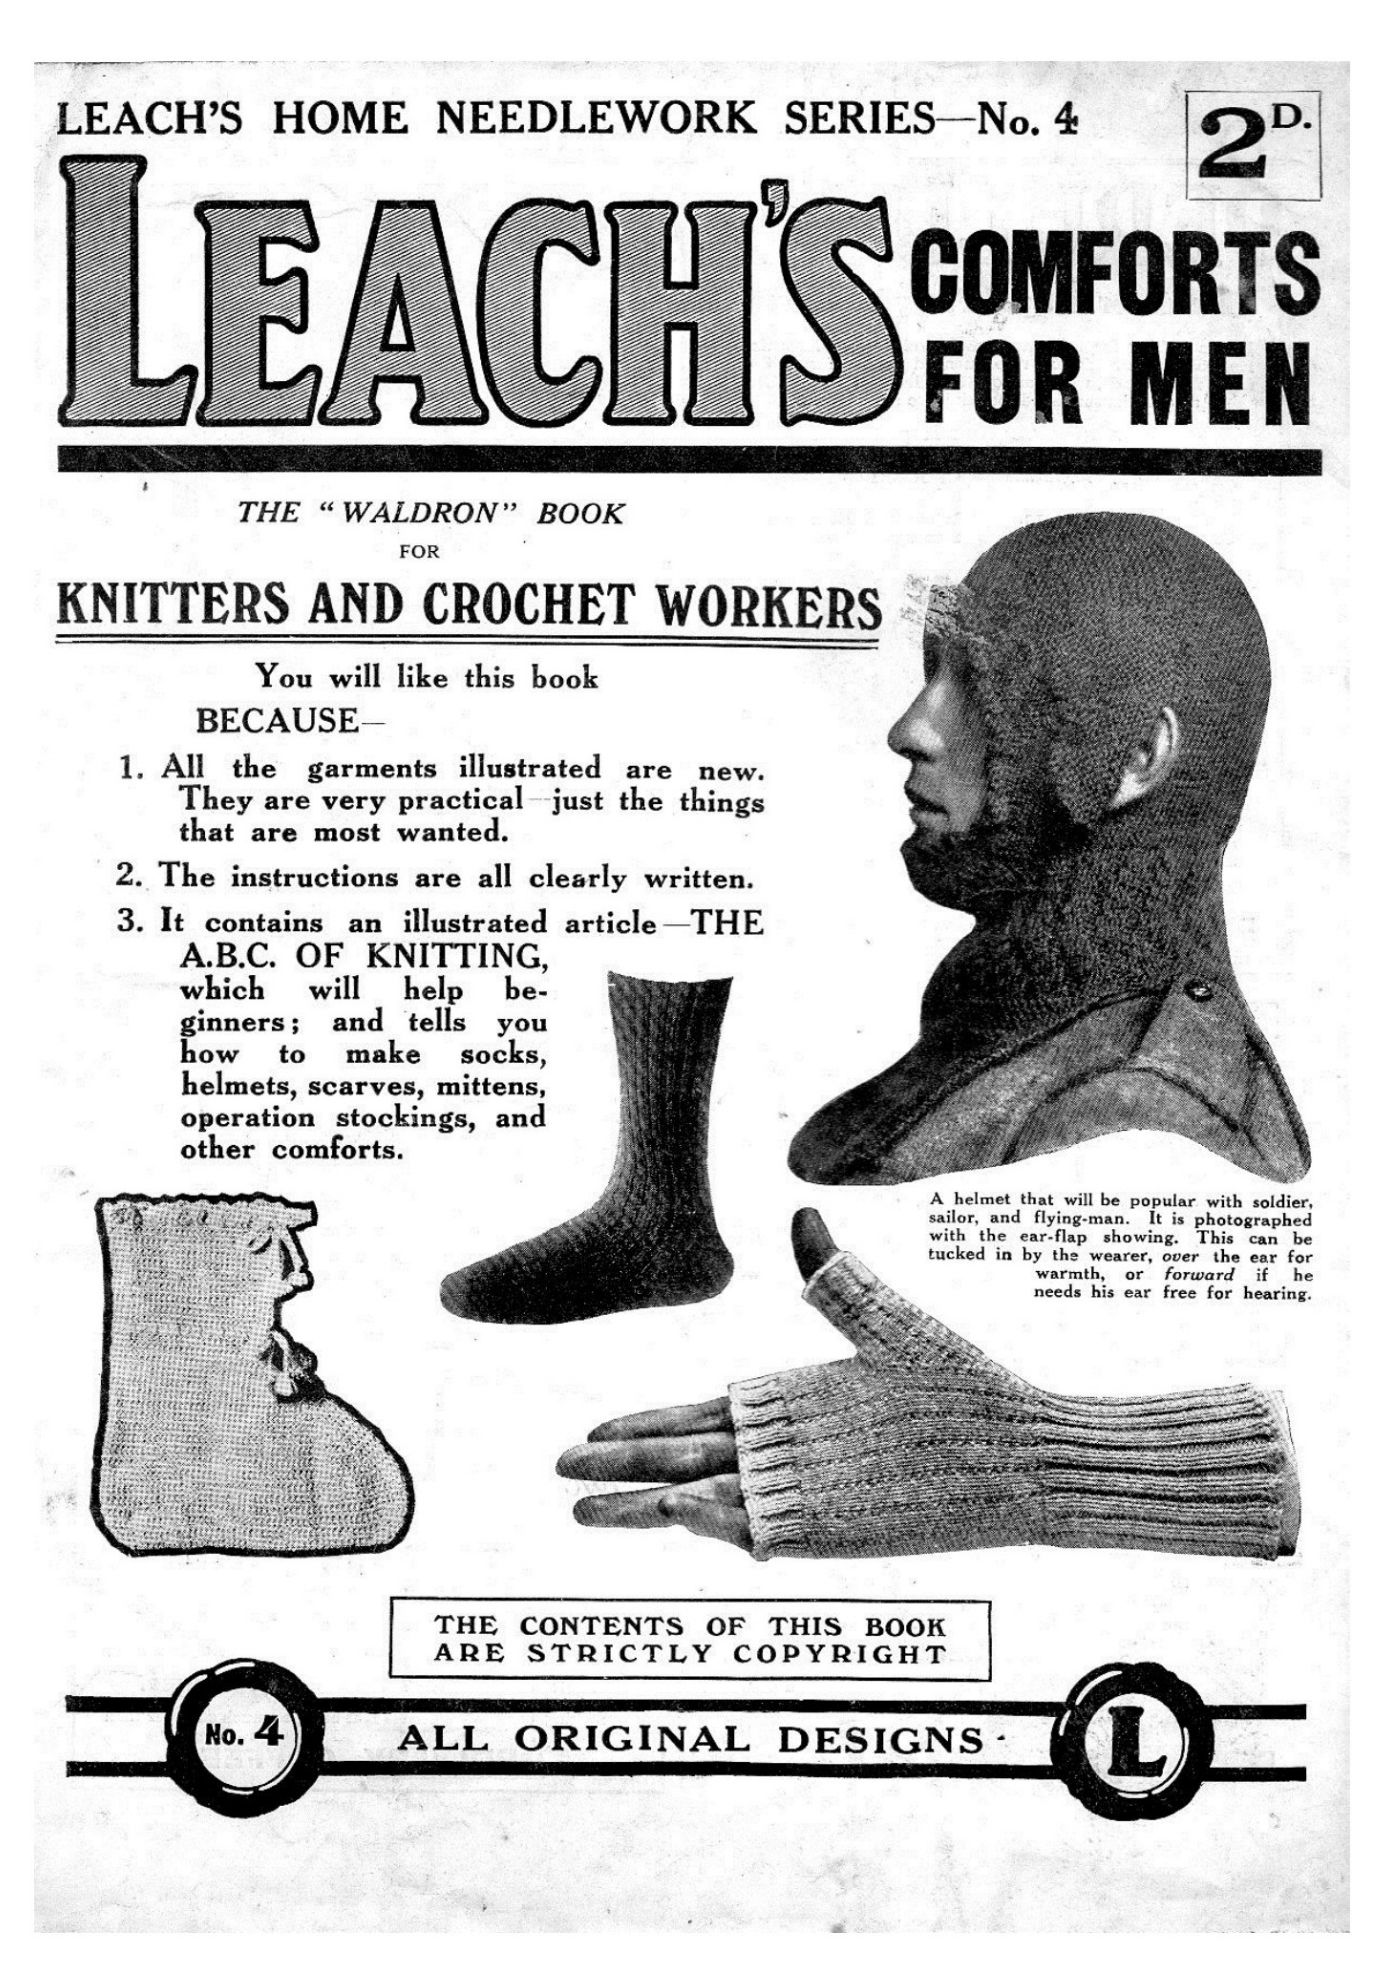 Comforts for men